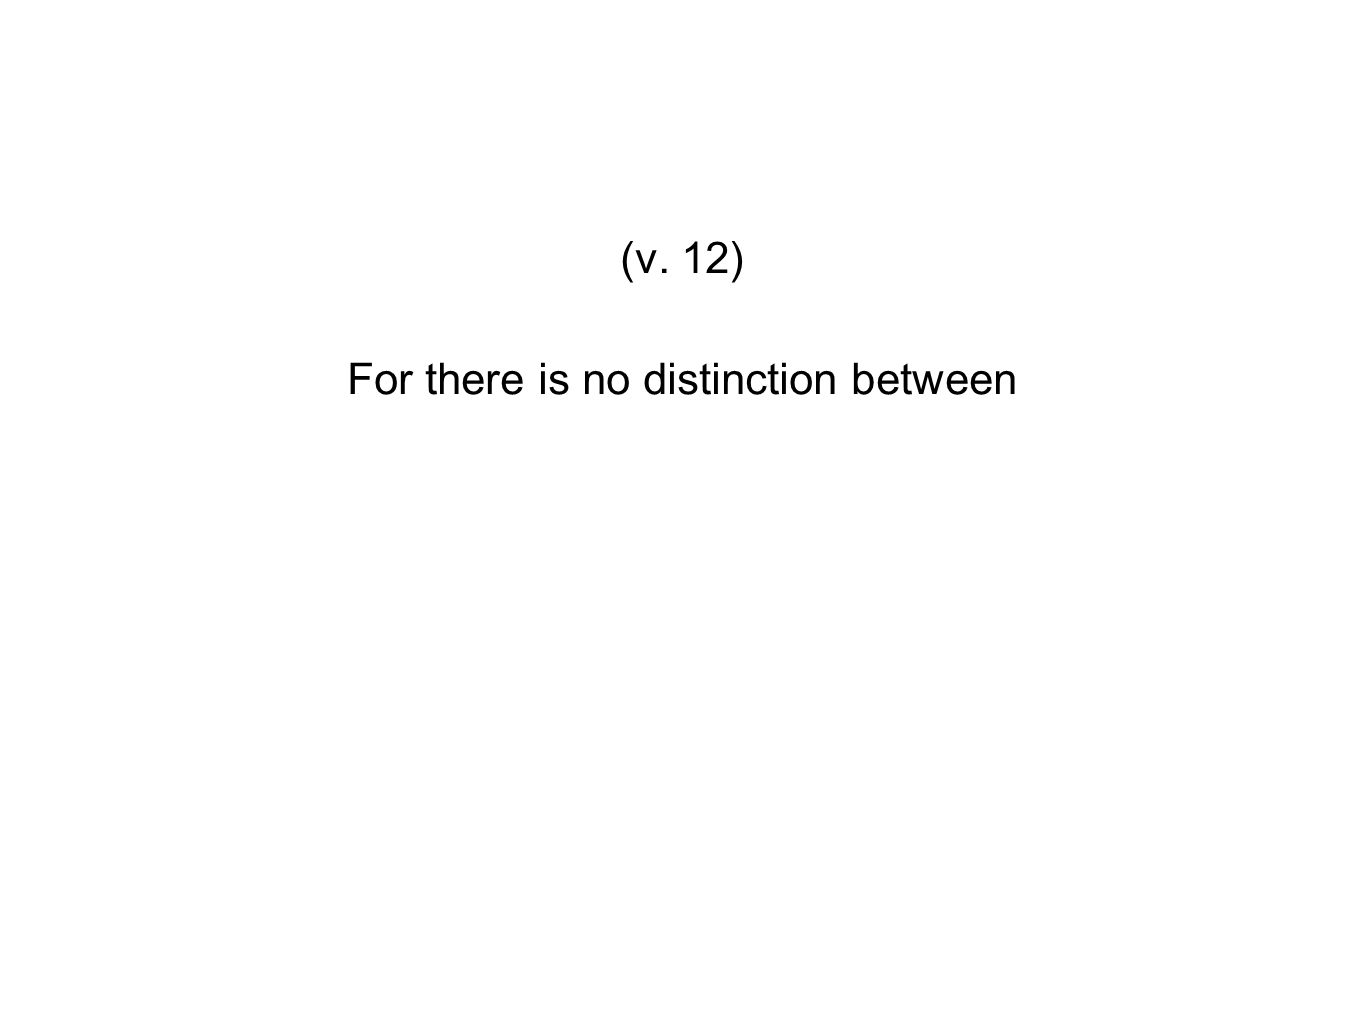 For there is no distinction between